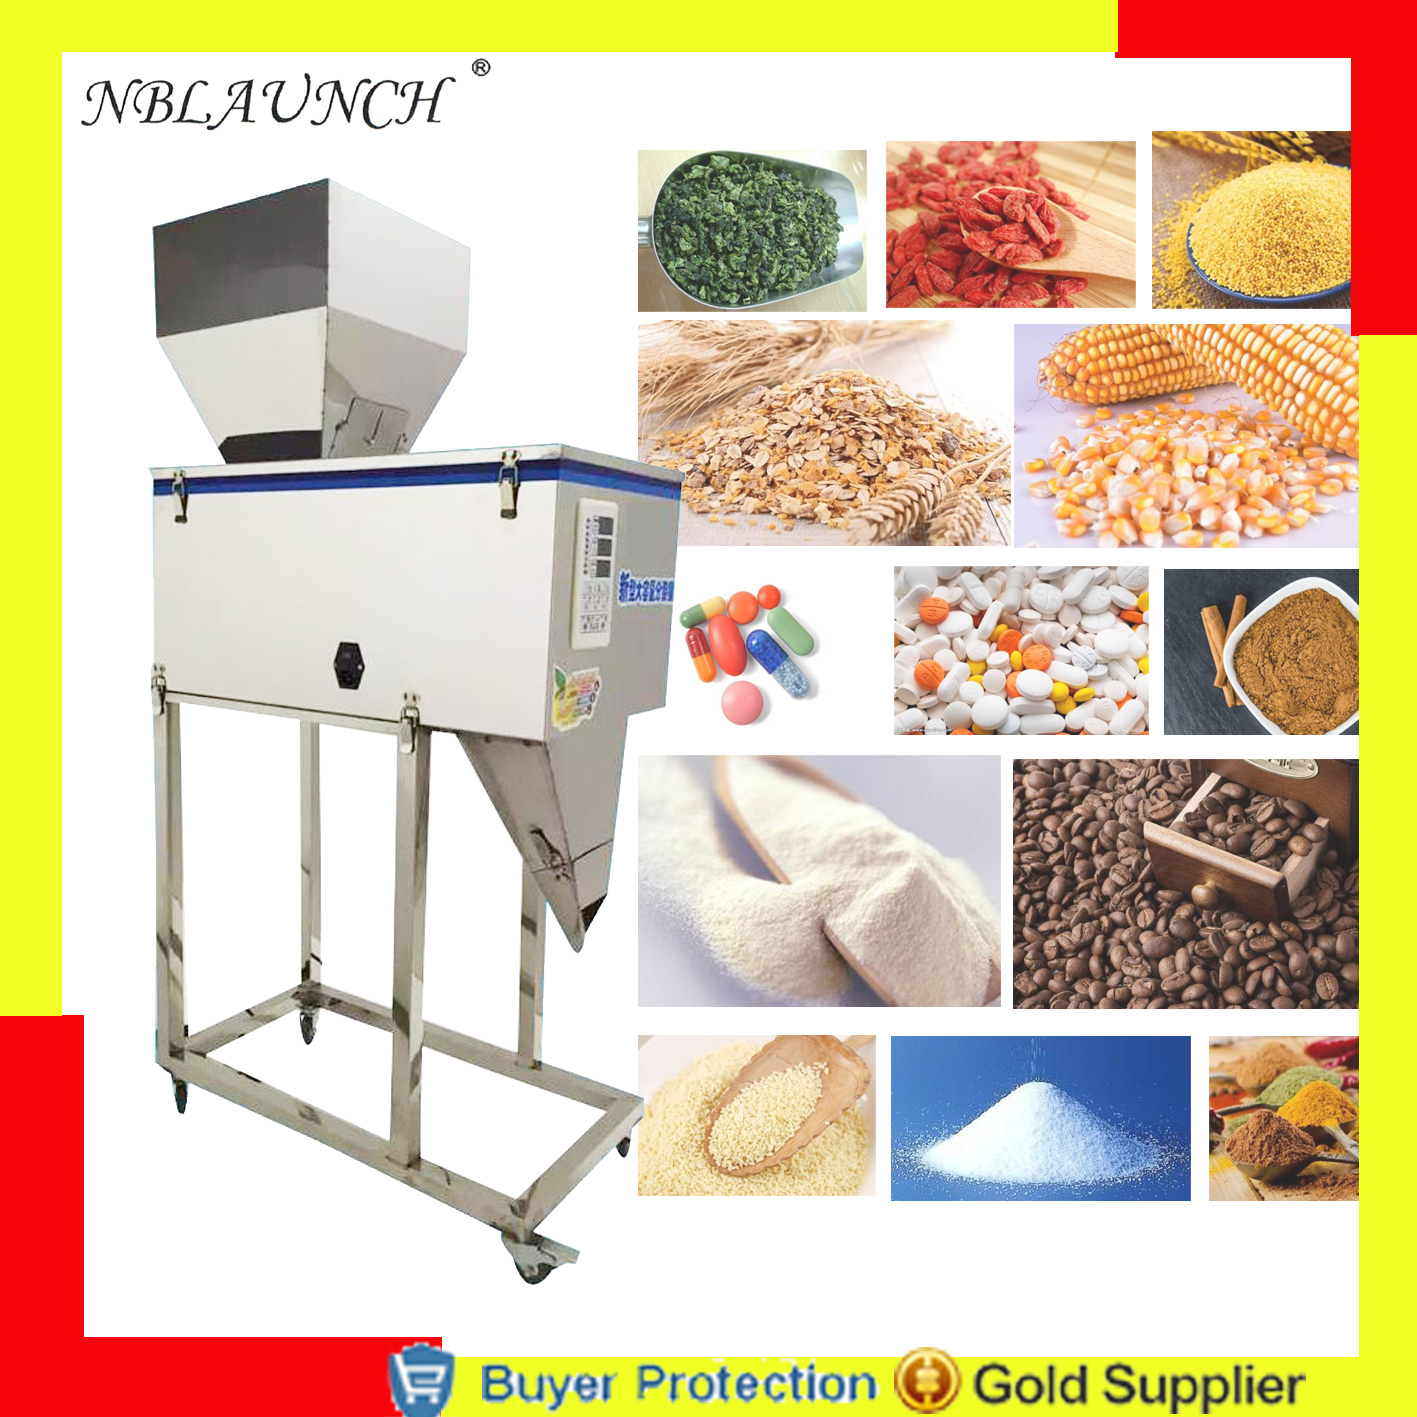 Home Appliances 2500g Filling And Weighing Machine Dog Cat Pet Food Coffee Beans Grain Seed Rice Racking Chemical Fertilizer Milk Powder Filler Good For Antipyretic And Throat Soother Kitchen Appliances